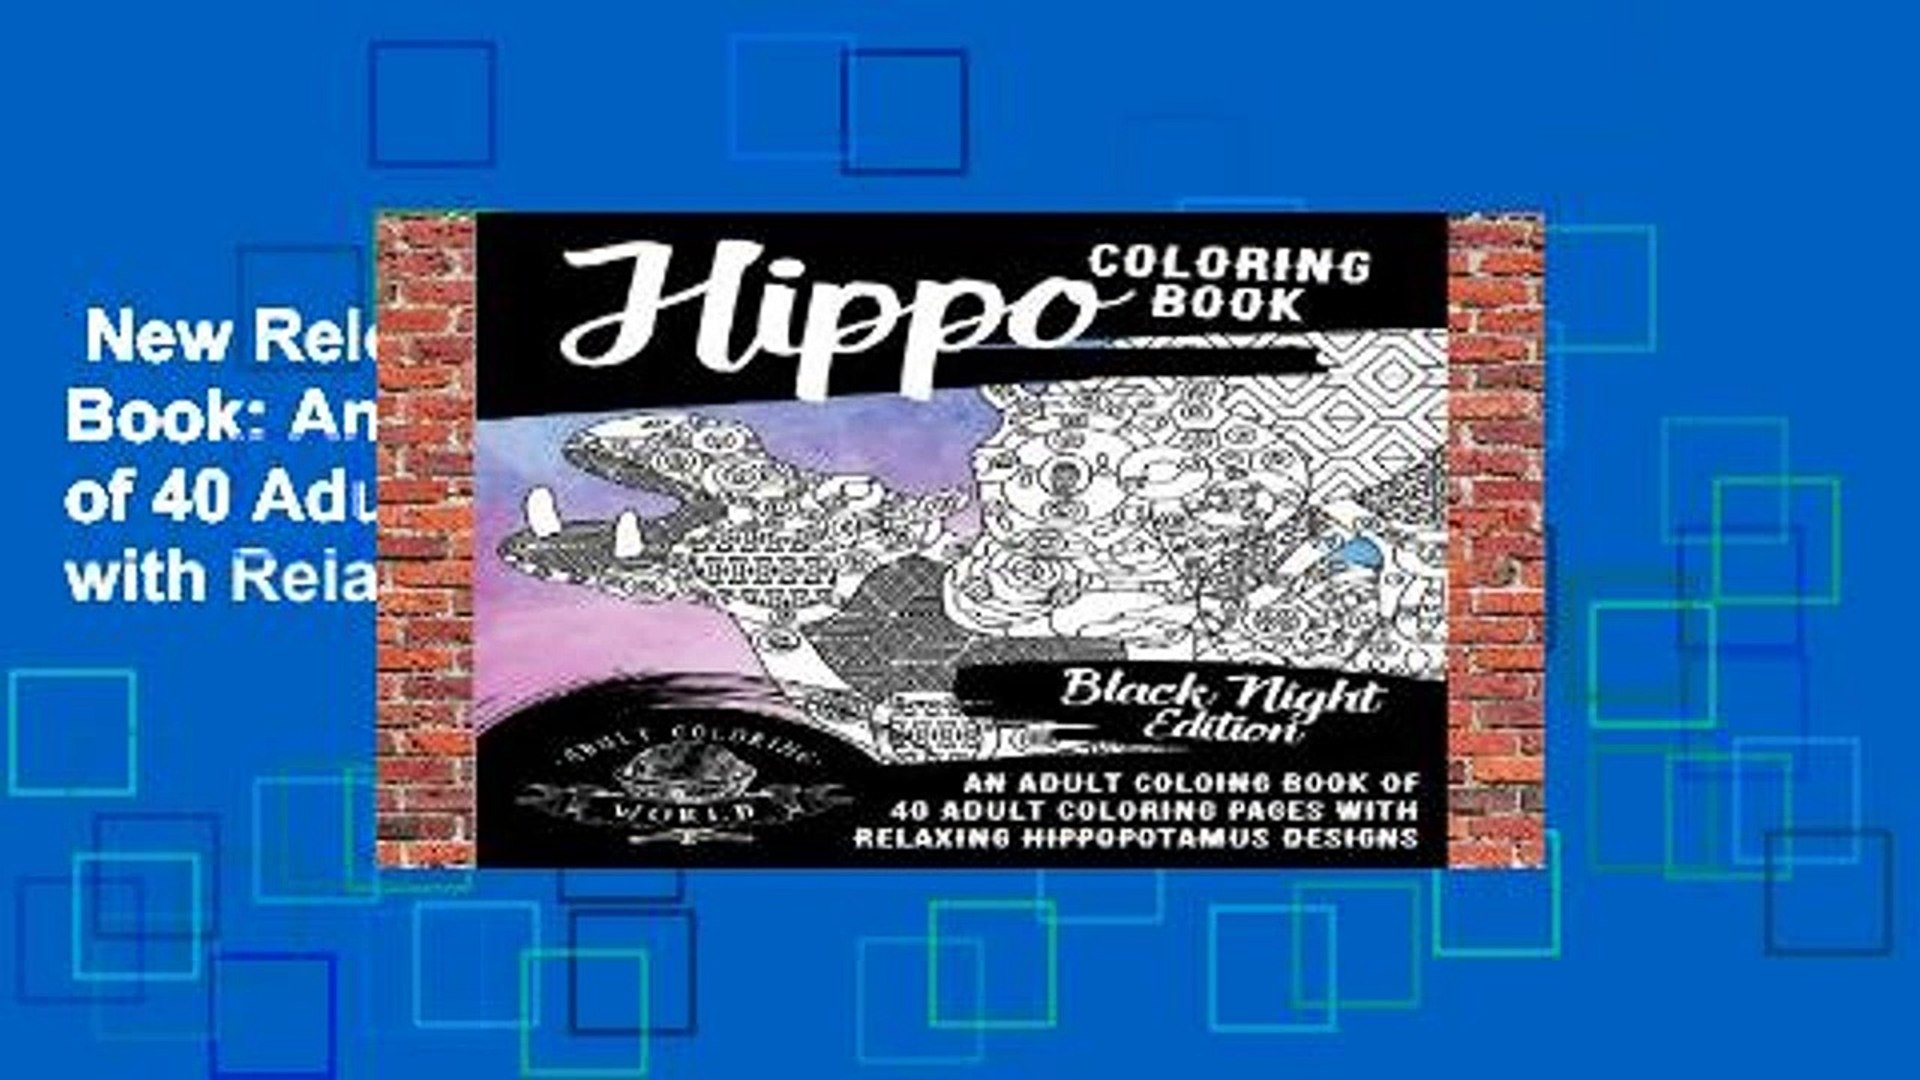 New Releases Hippo Coloring Book: An Adult Coloring Book of 40 Adult  Coloring Pages with Relaxing